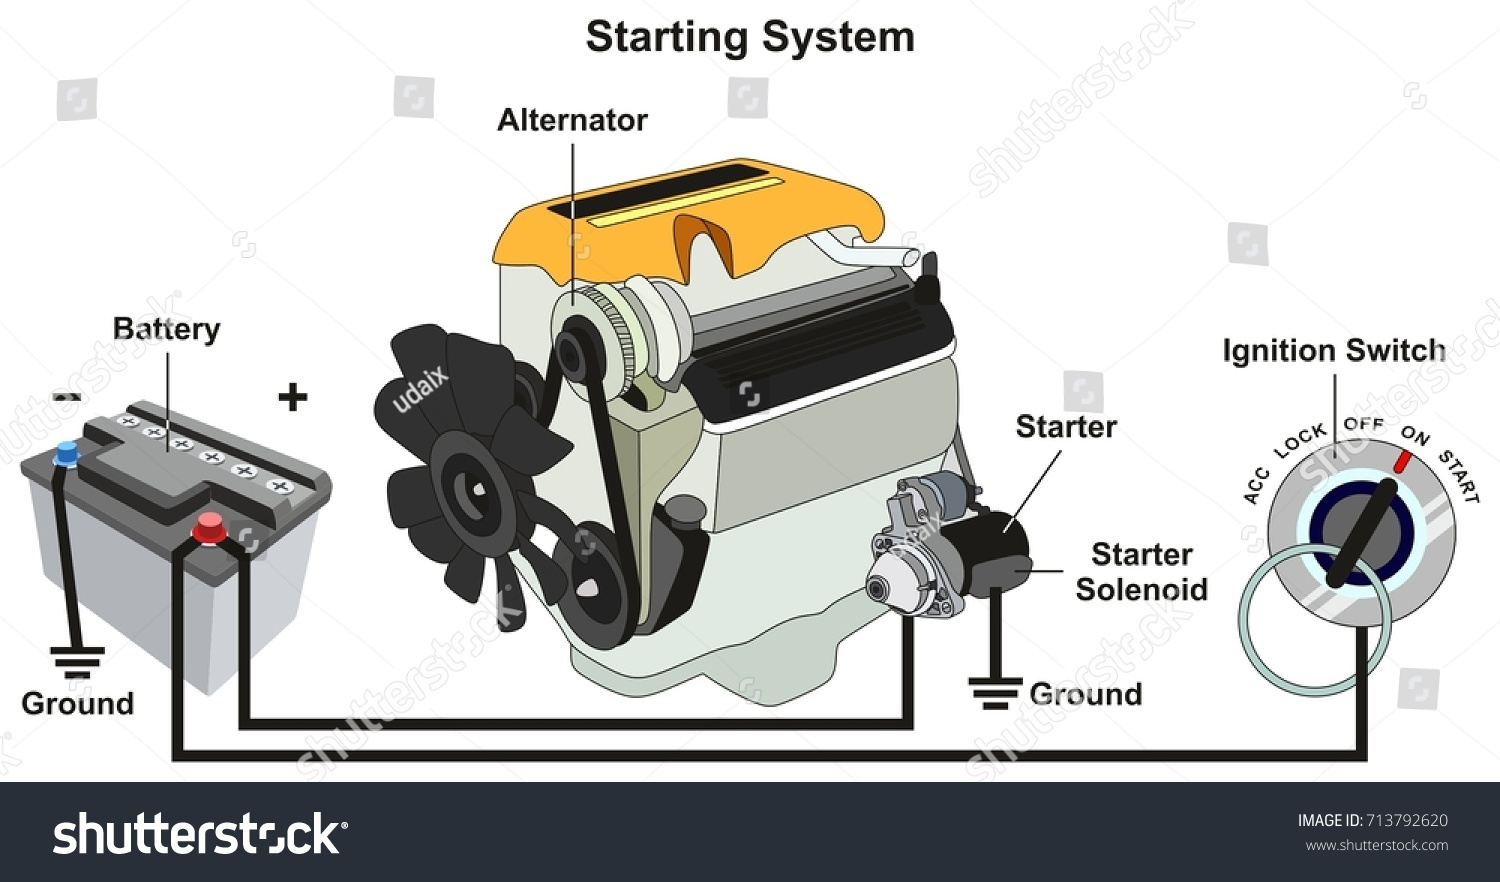 96 Diagram Of A Car Battery Car Battery Charger Why  : stock vector starting and charging system infographic diagram with all parts including car battery engine 713792620 from motocyclenews.top size 1500 x 882 jpeg 225kB